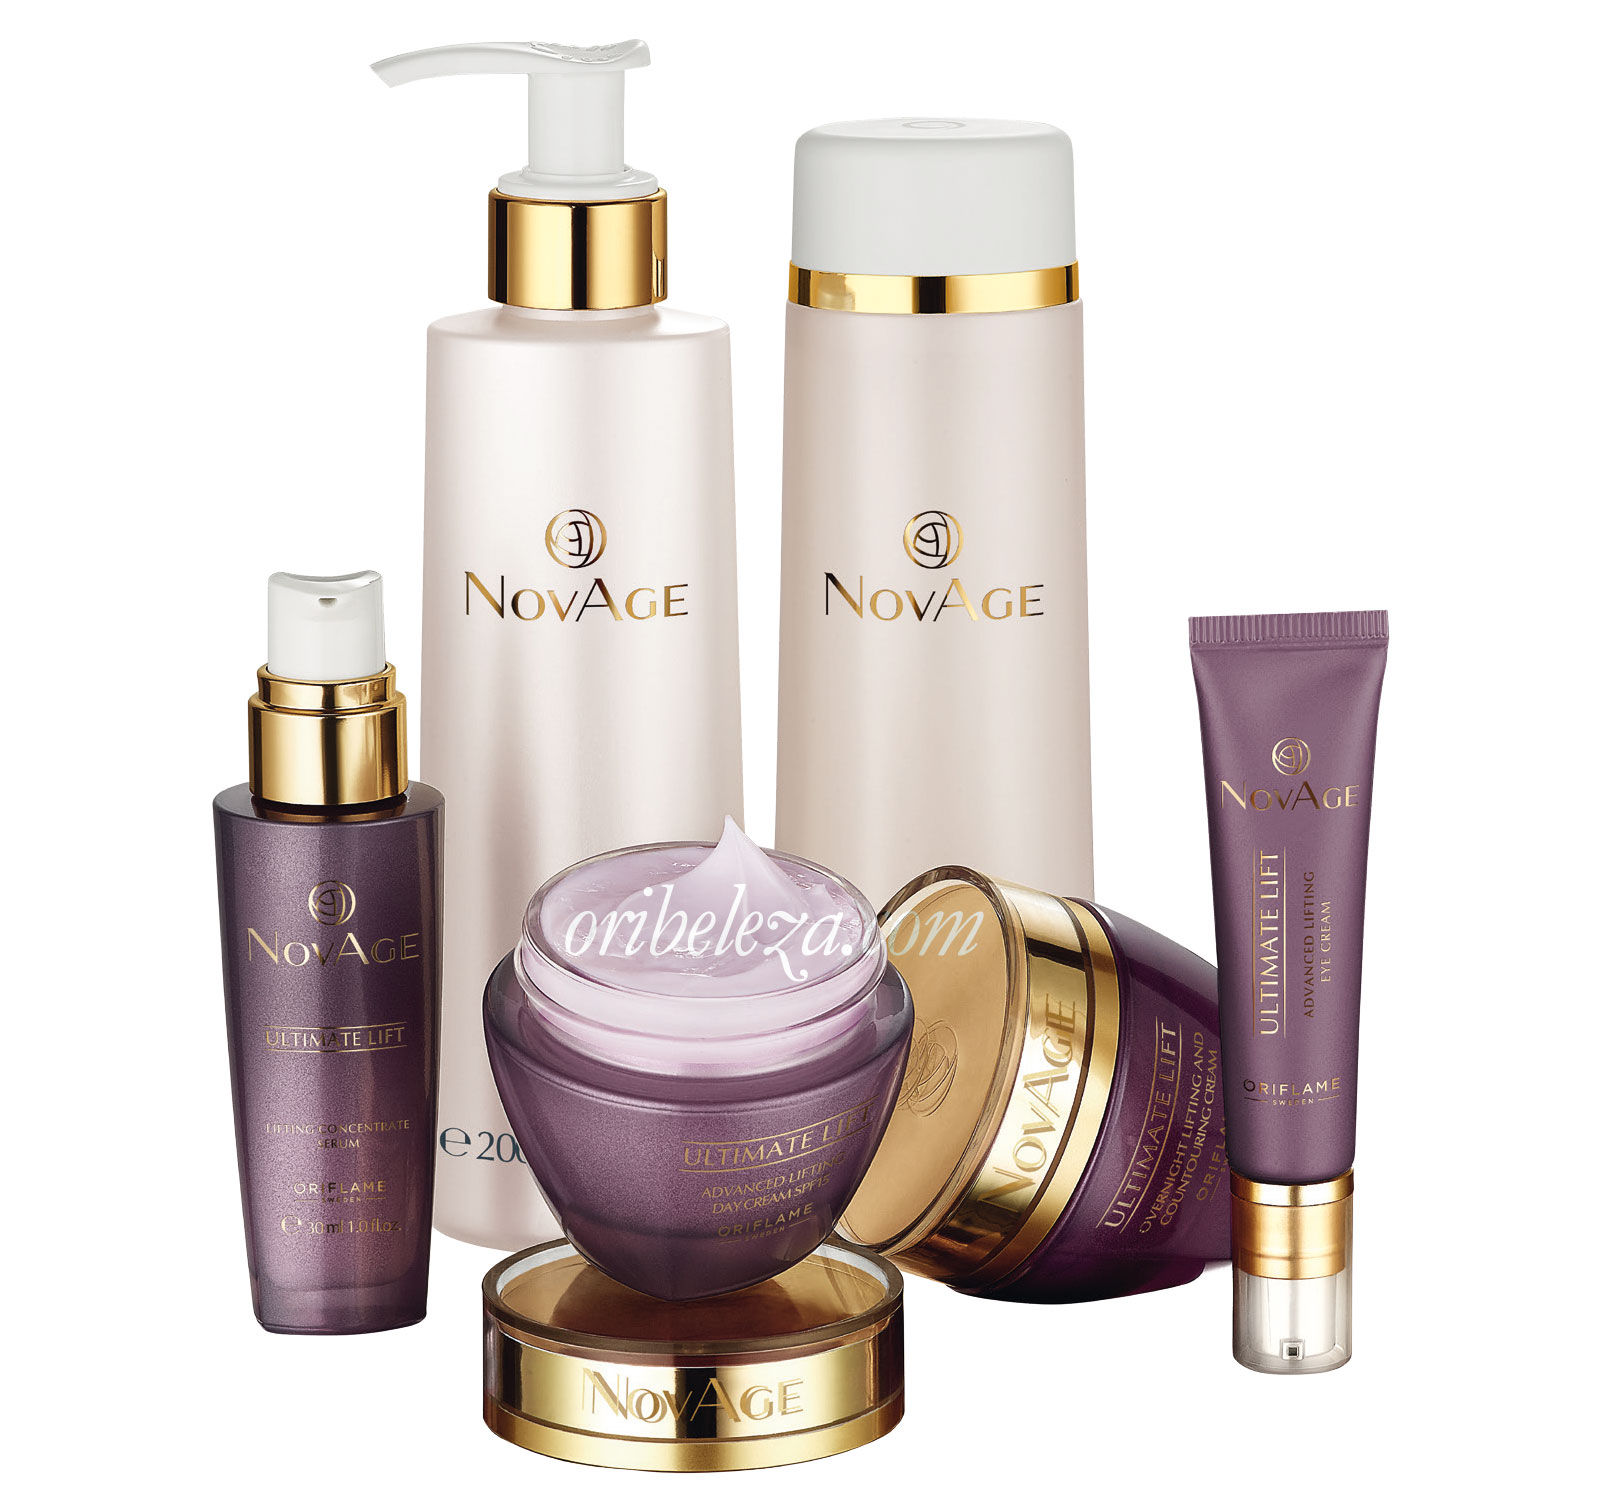 NovAge Ultimate Lift da Oriflame